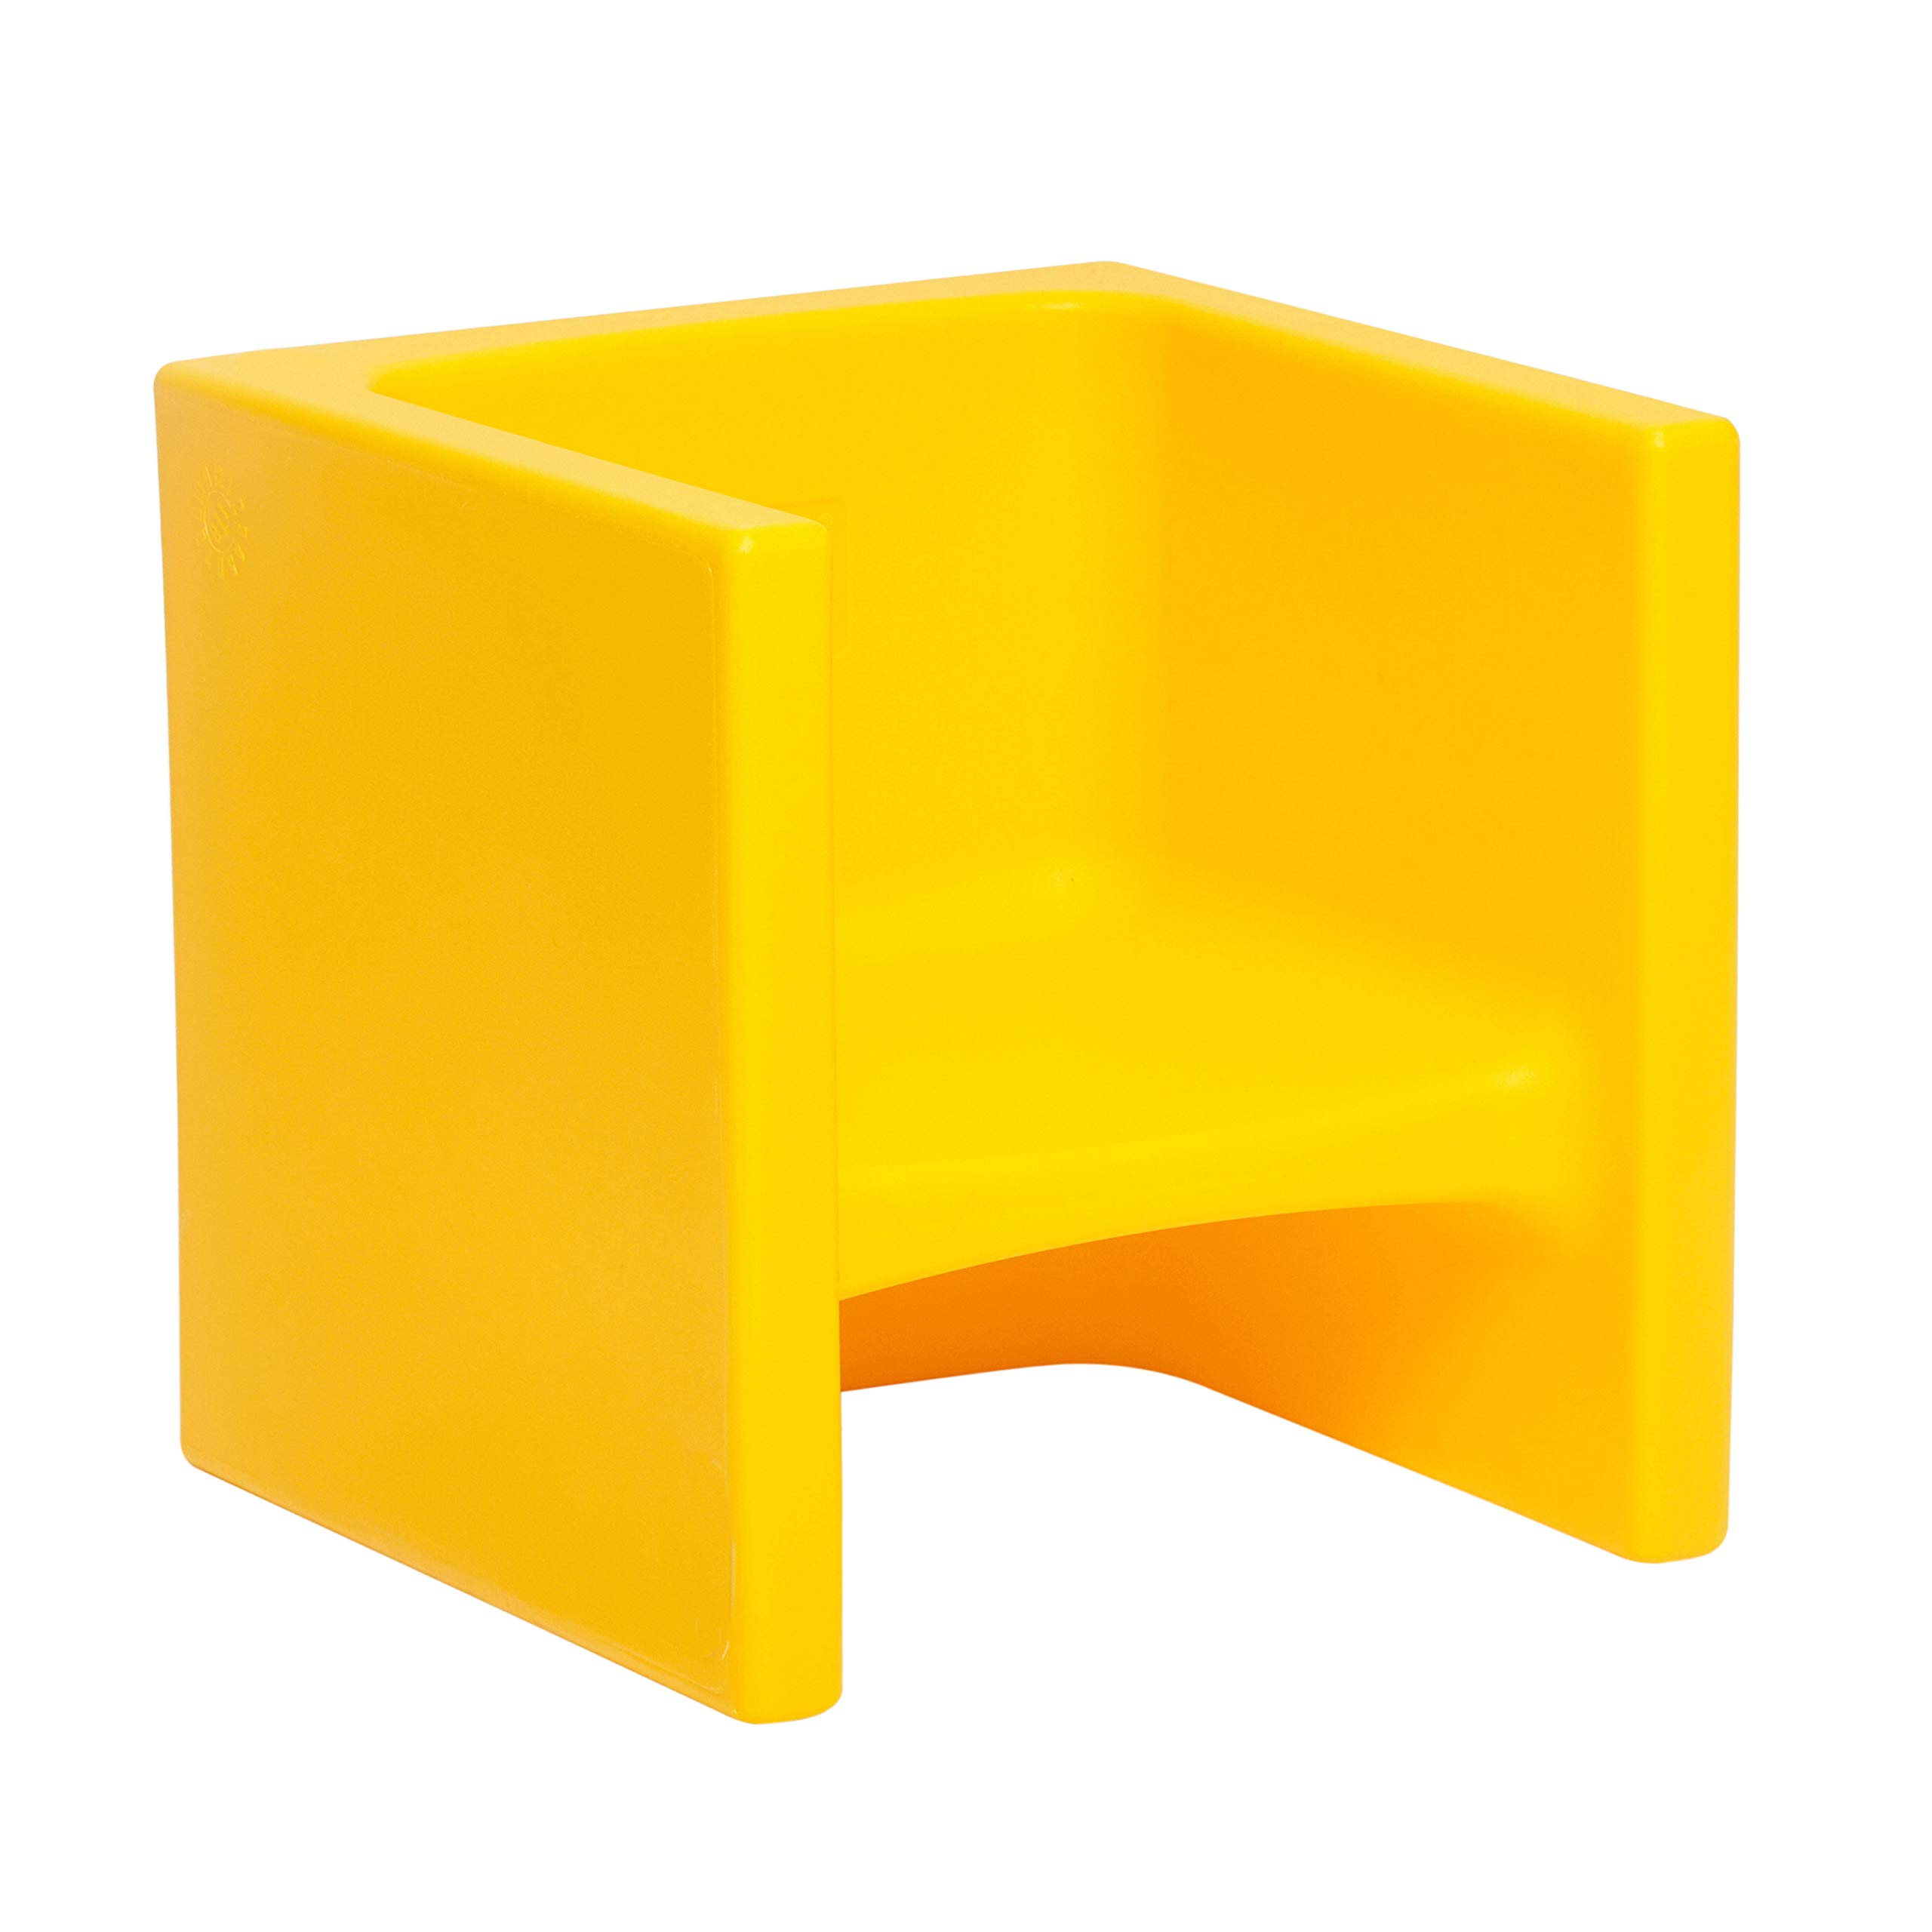 ECR4Kids Tri-Me 3-in-1 Cube Chair, Portable Indoor/Outdoor Play Seat or Table for Kids and Toddlers, Yellow by ECR4Kids